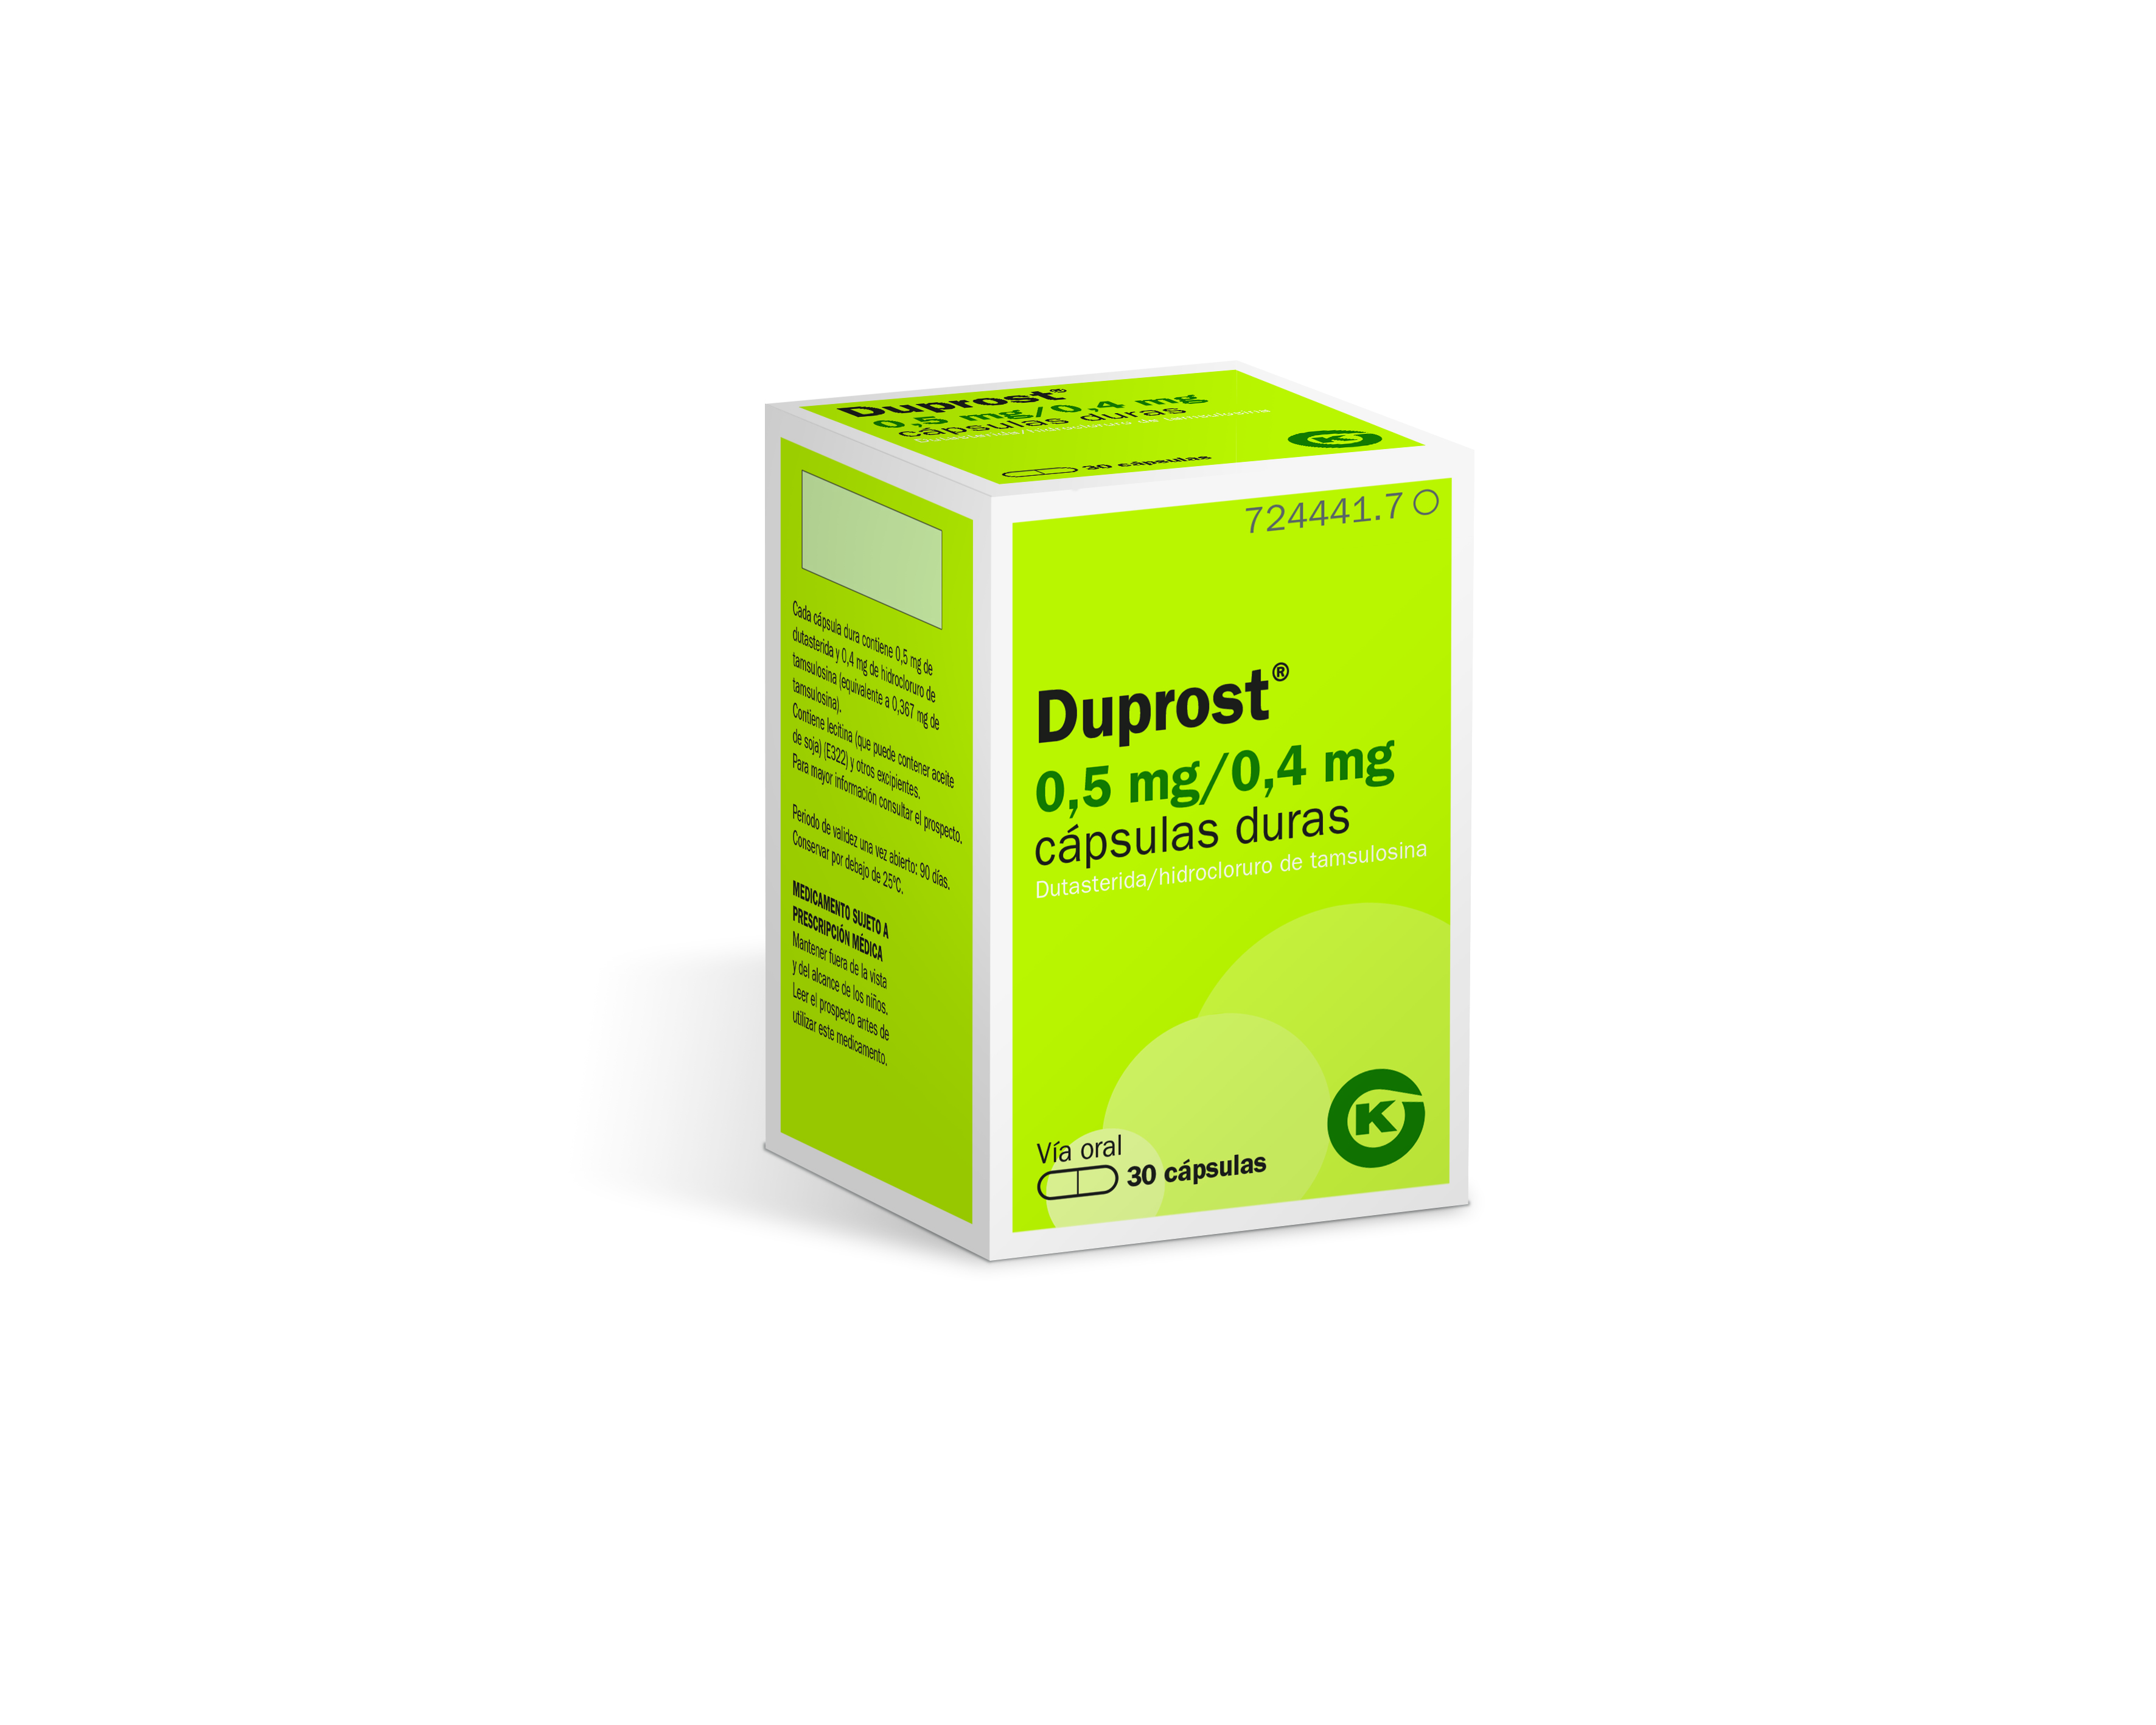 Duprost 0 5 mg equals how many ml